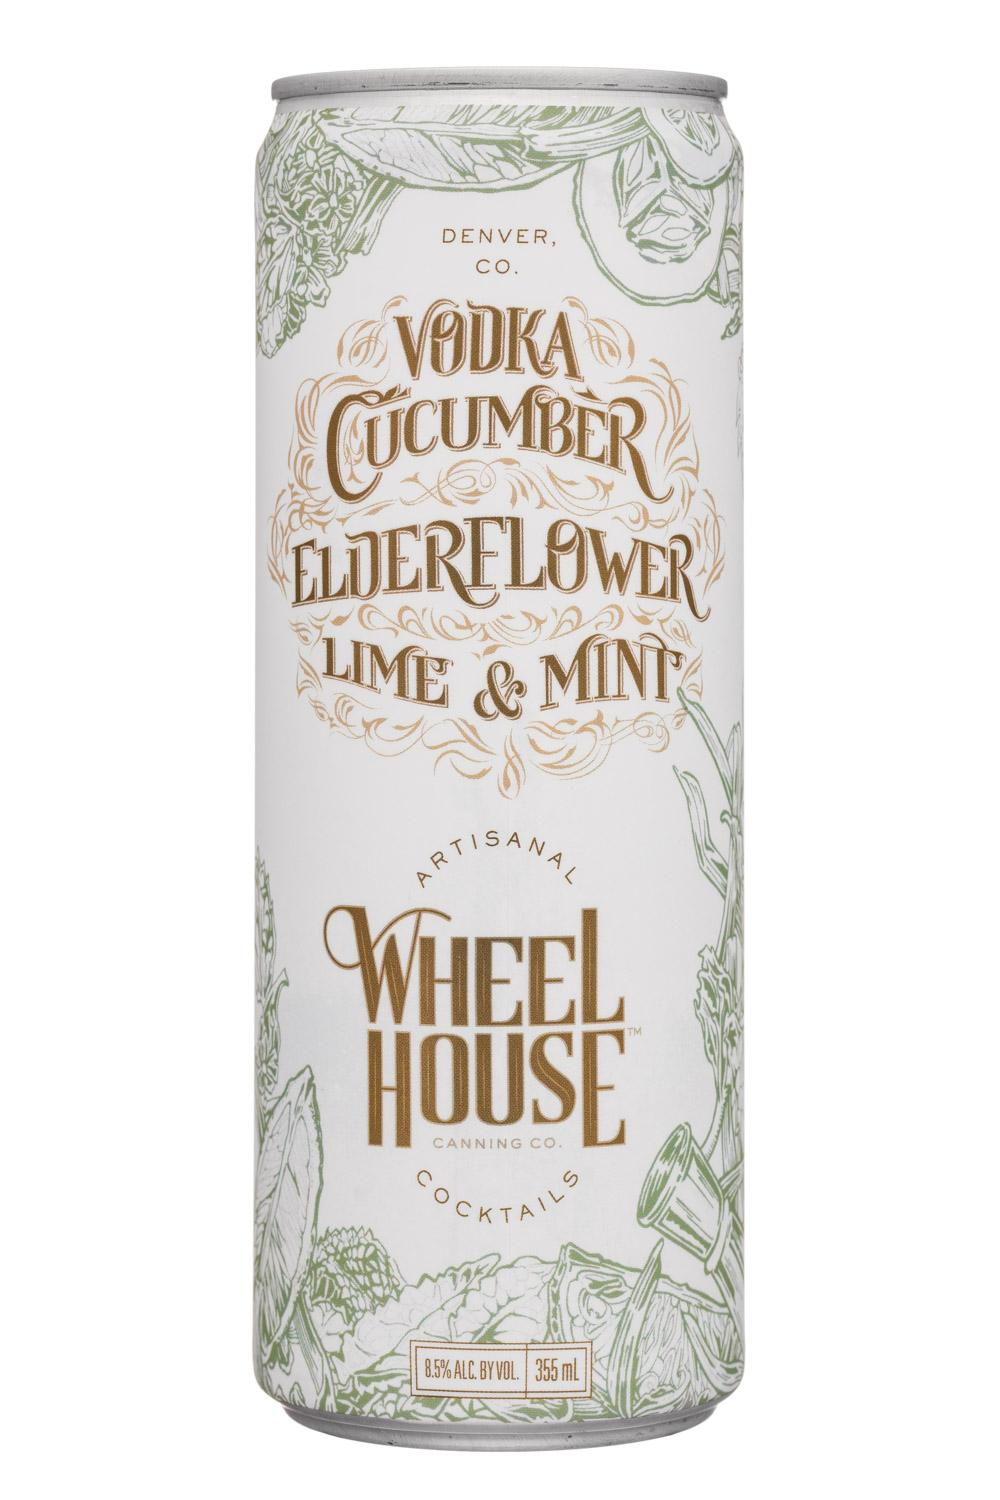 Wheel House Cocktails: WheelHouse-9oz-VodkaCucumberElderflowerLimeMint